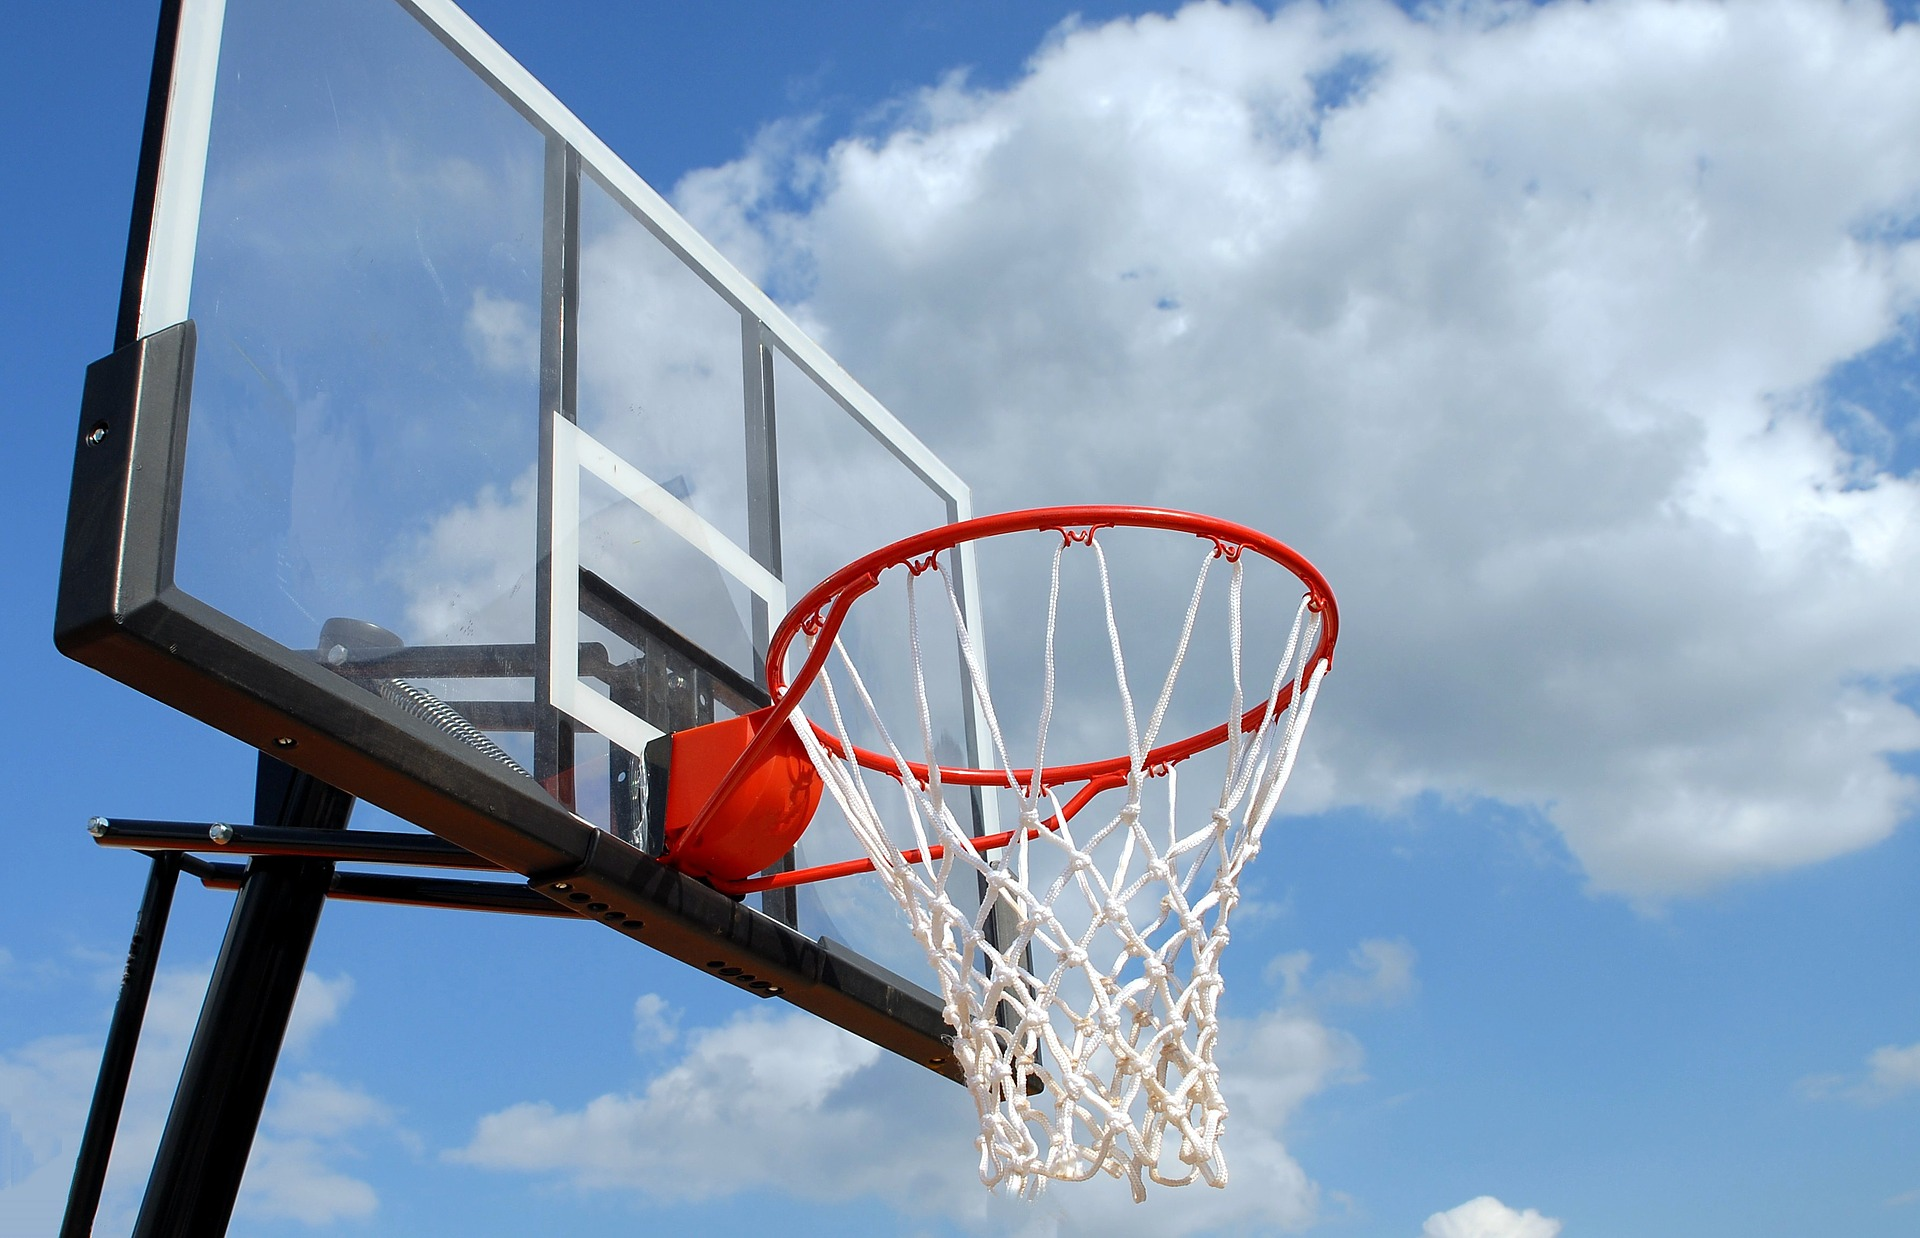 20180513 pixabay outdoor basketball 1639860 1920